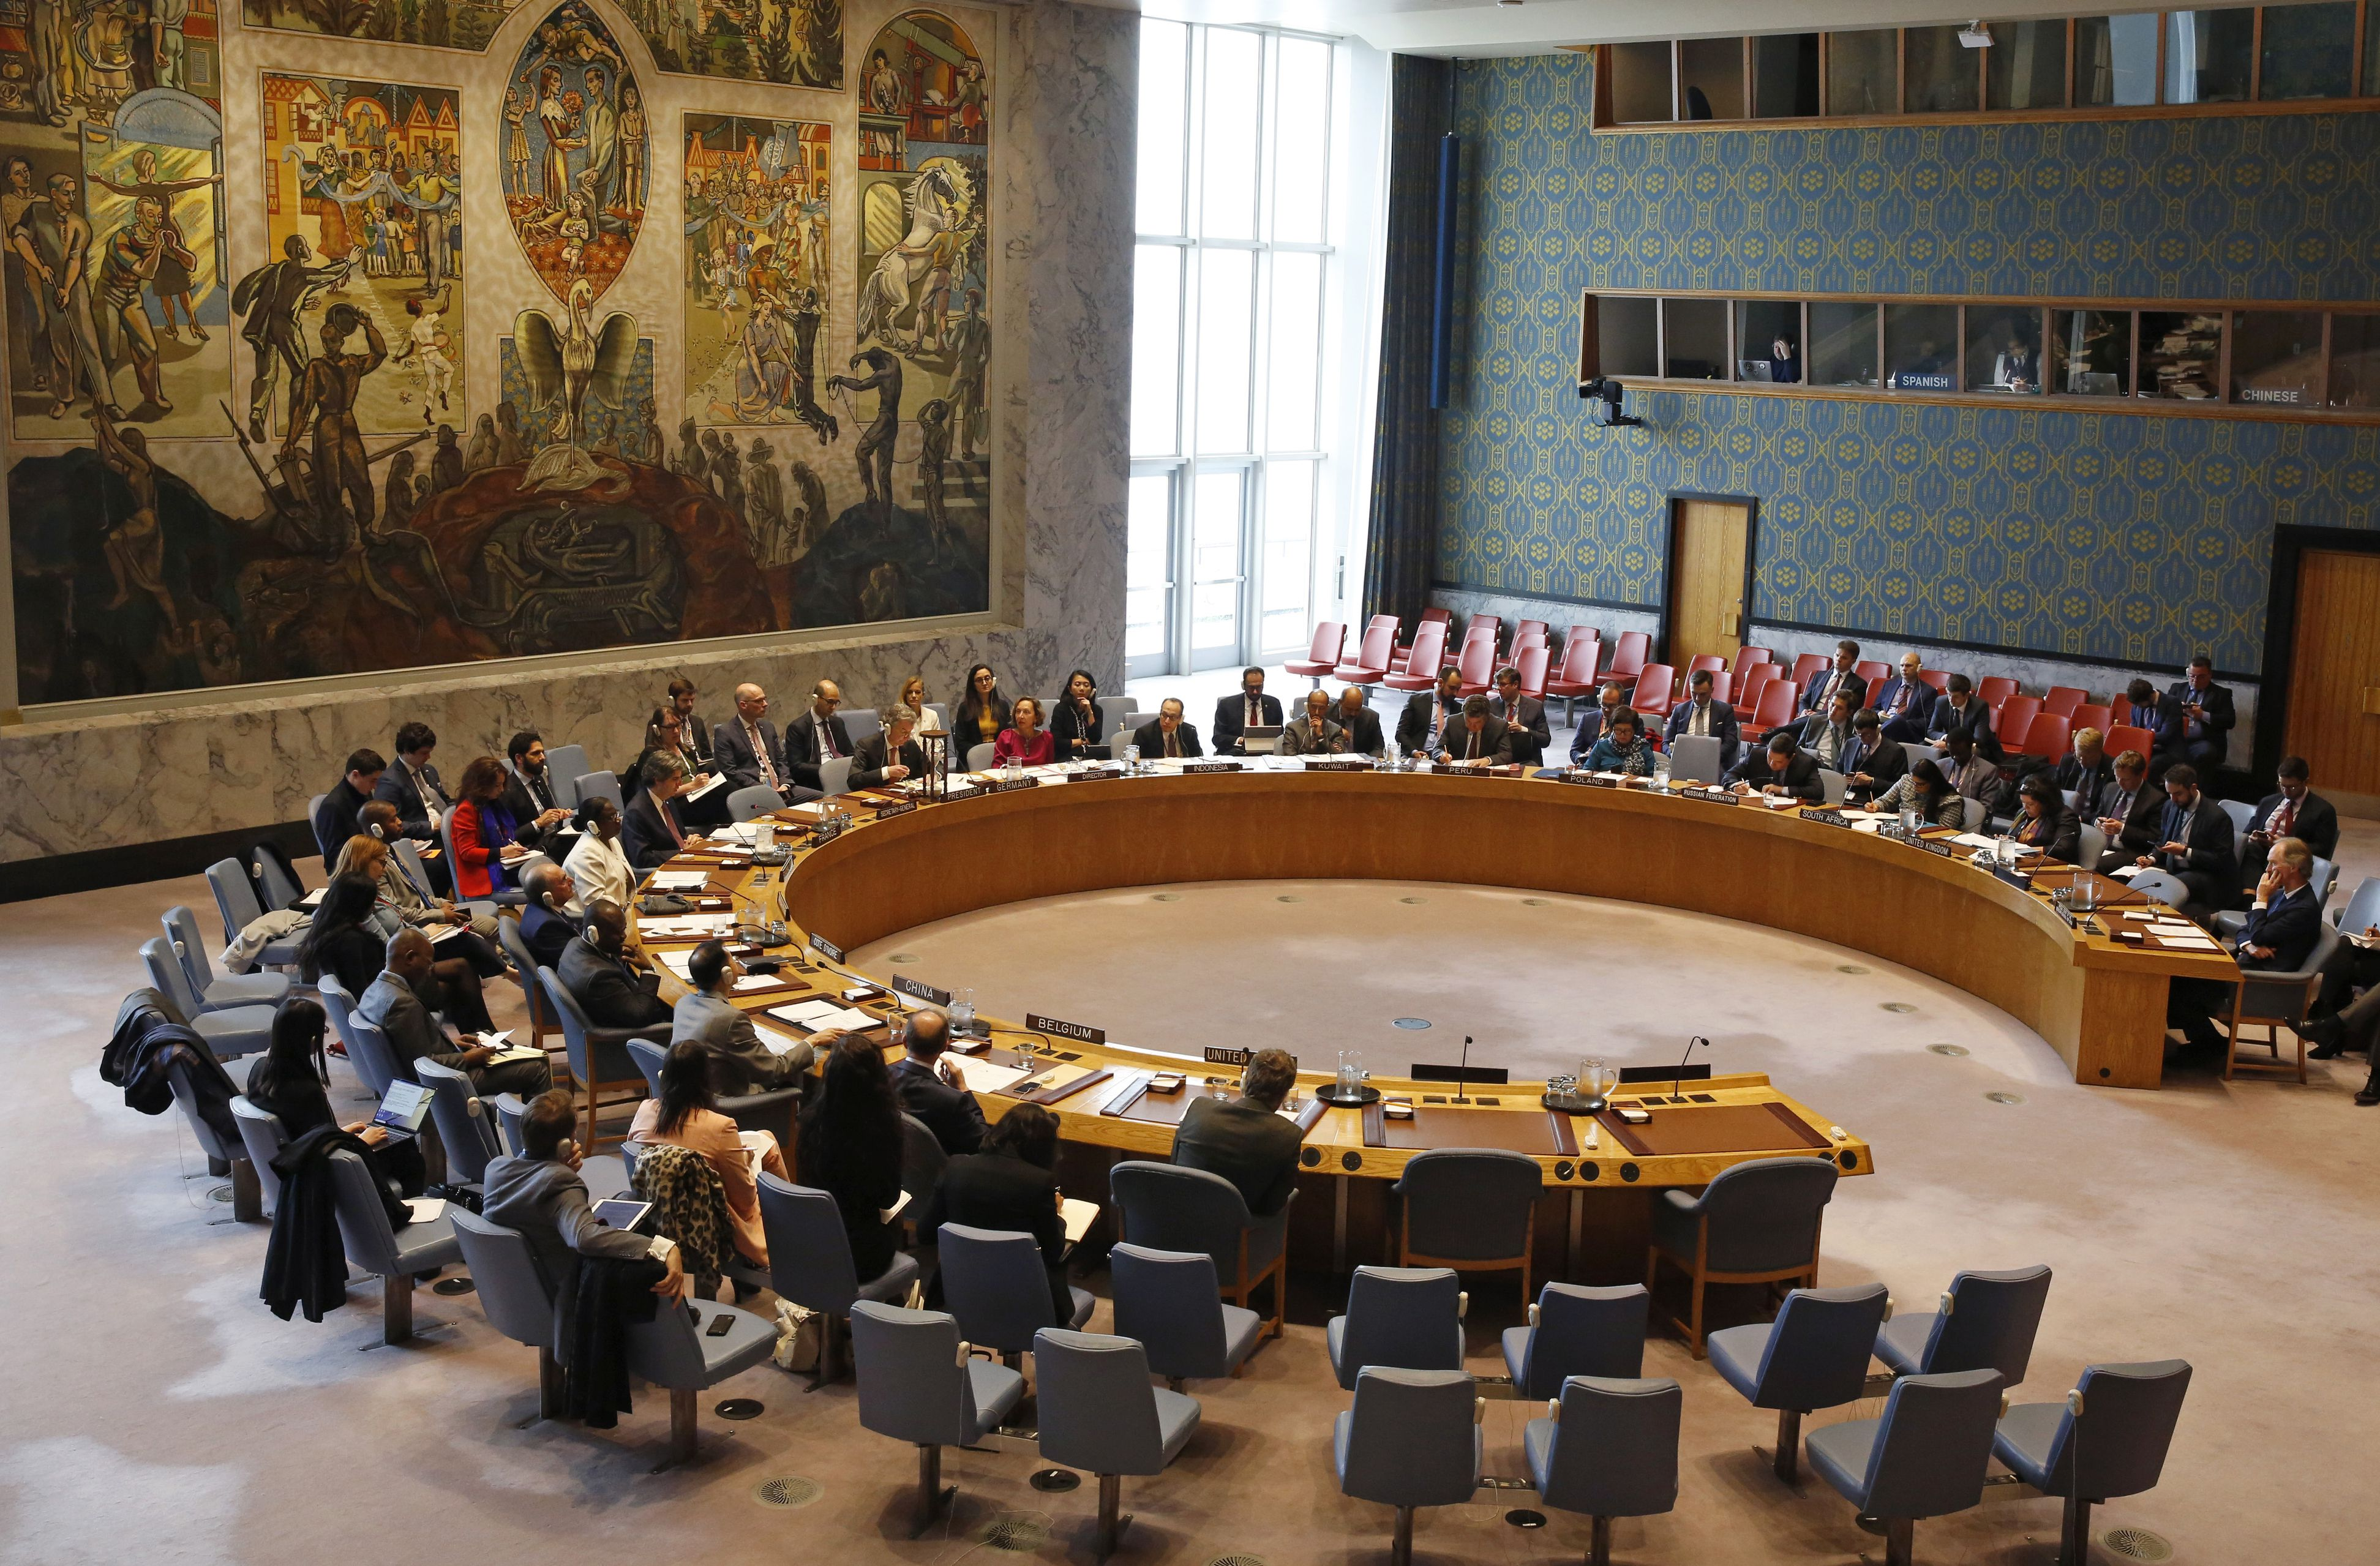 What will Canada do to win a Security Council seat? Far too much